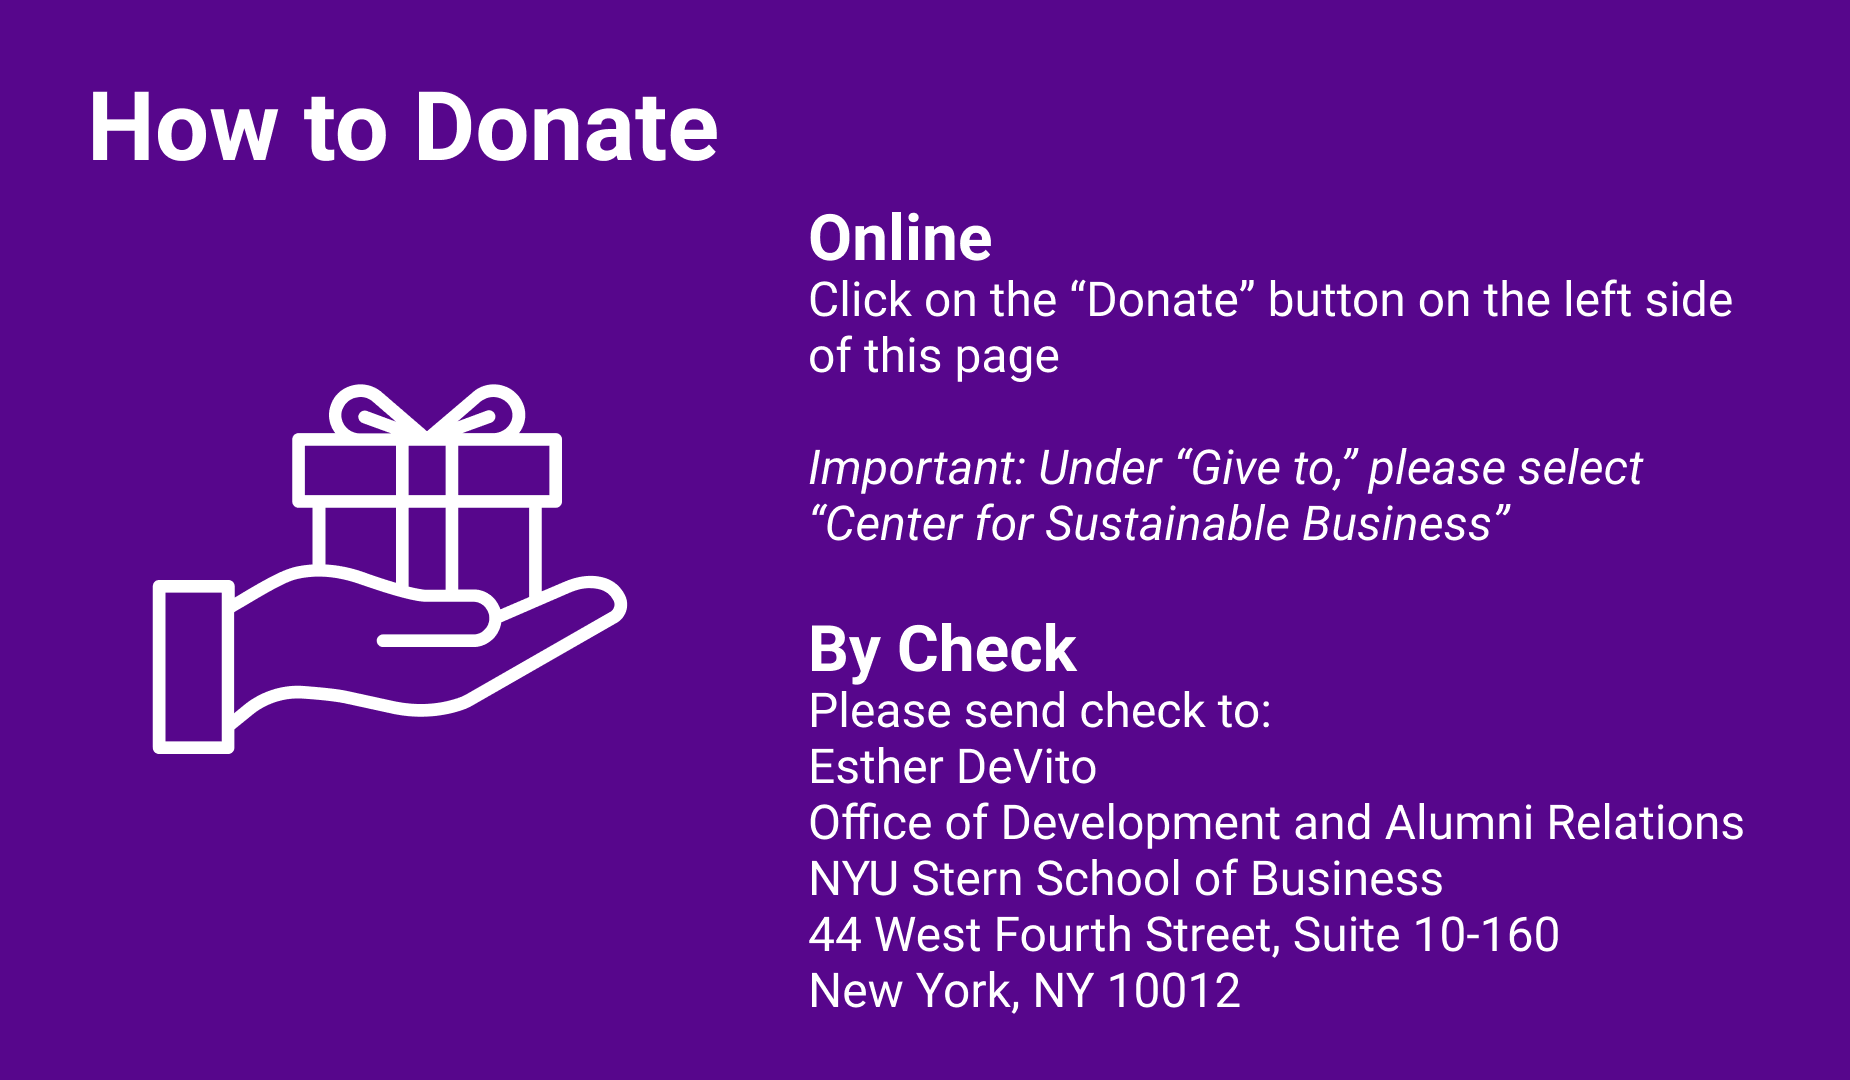 How to Donate